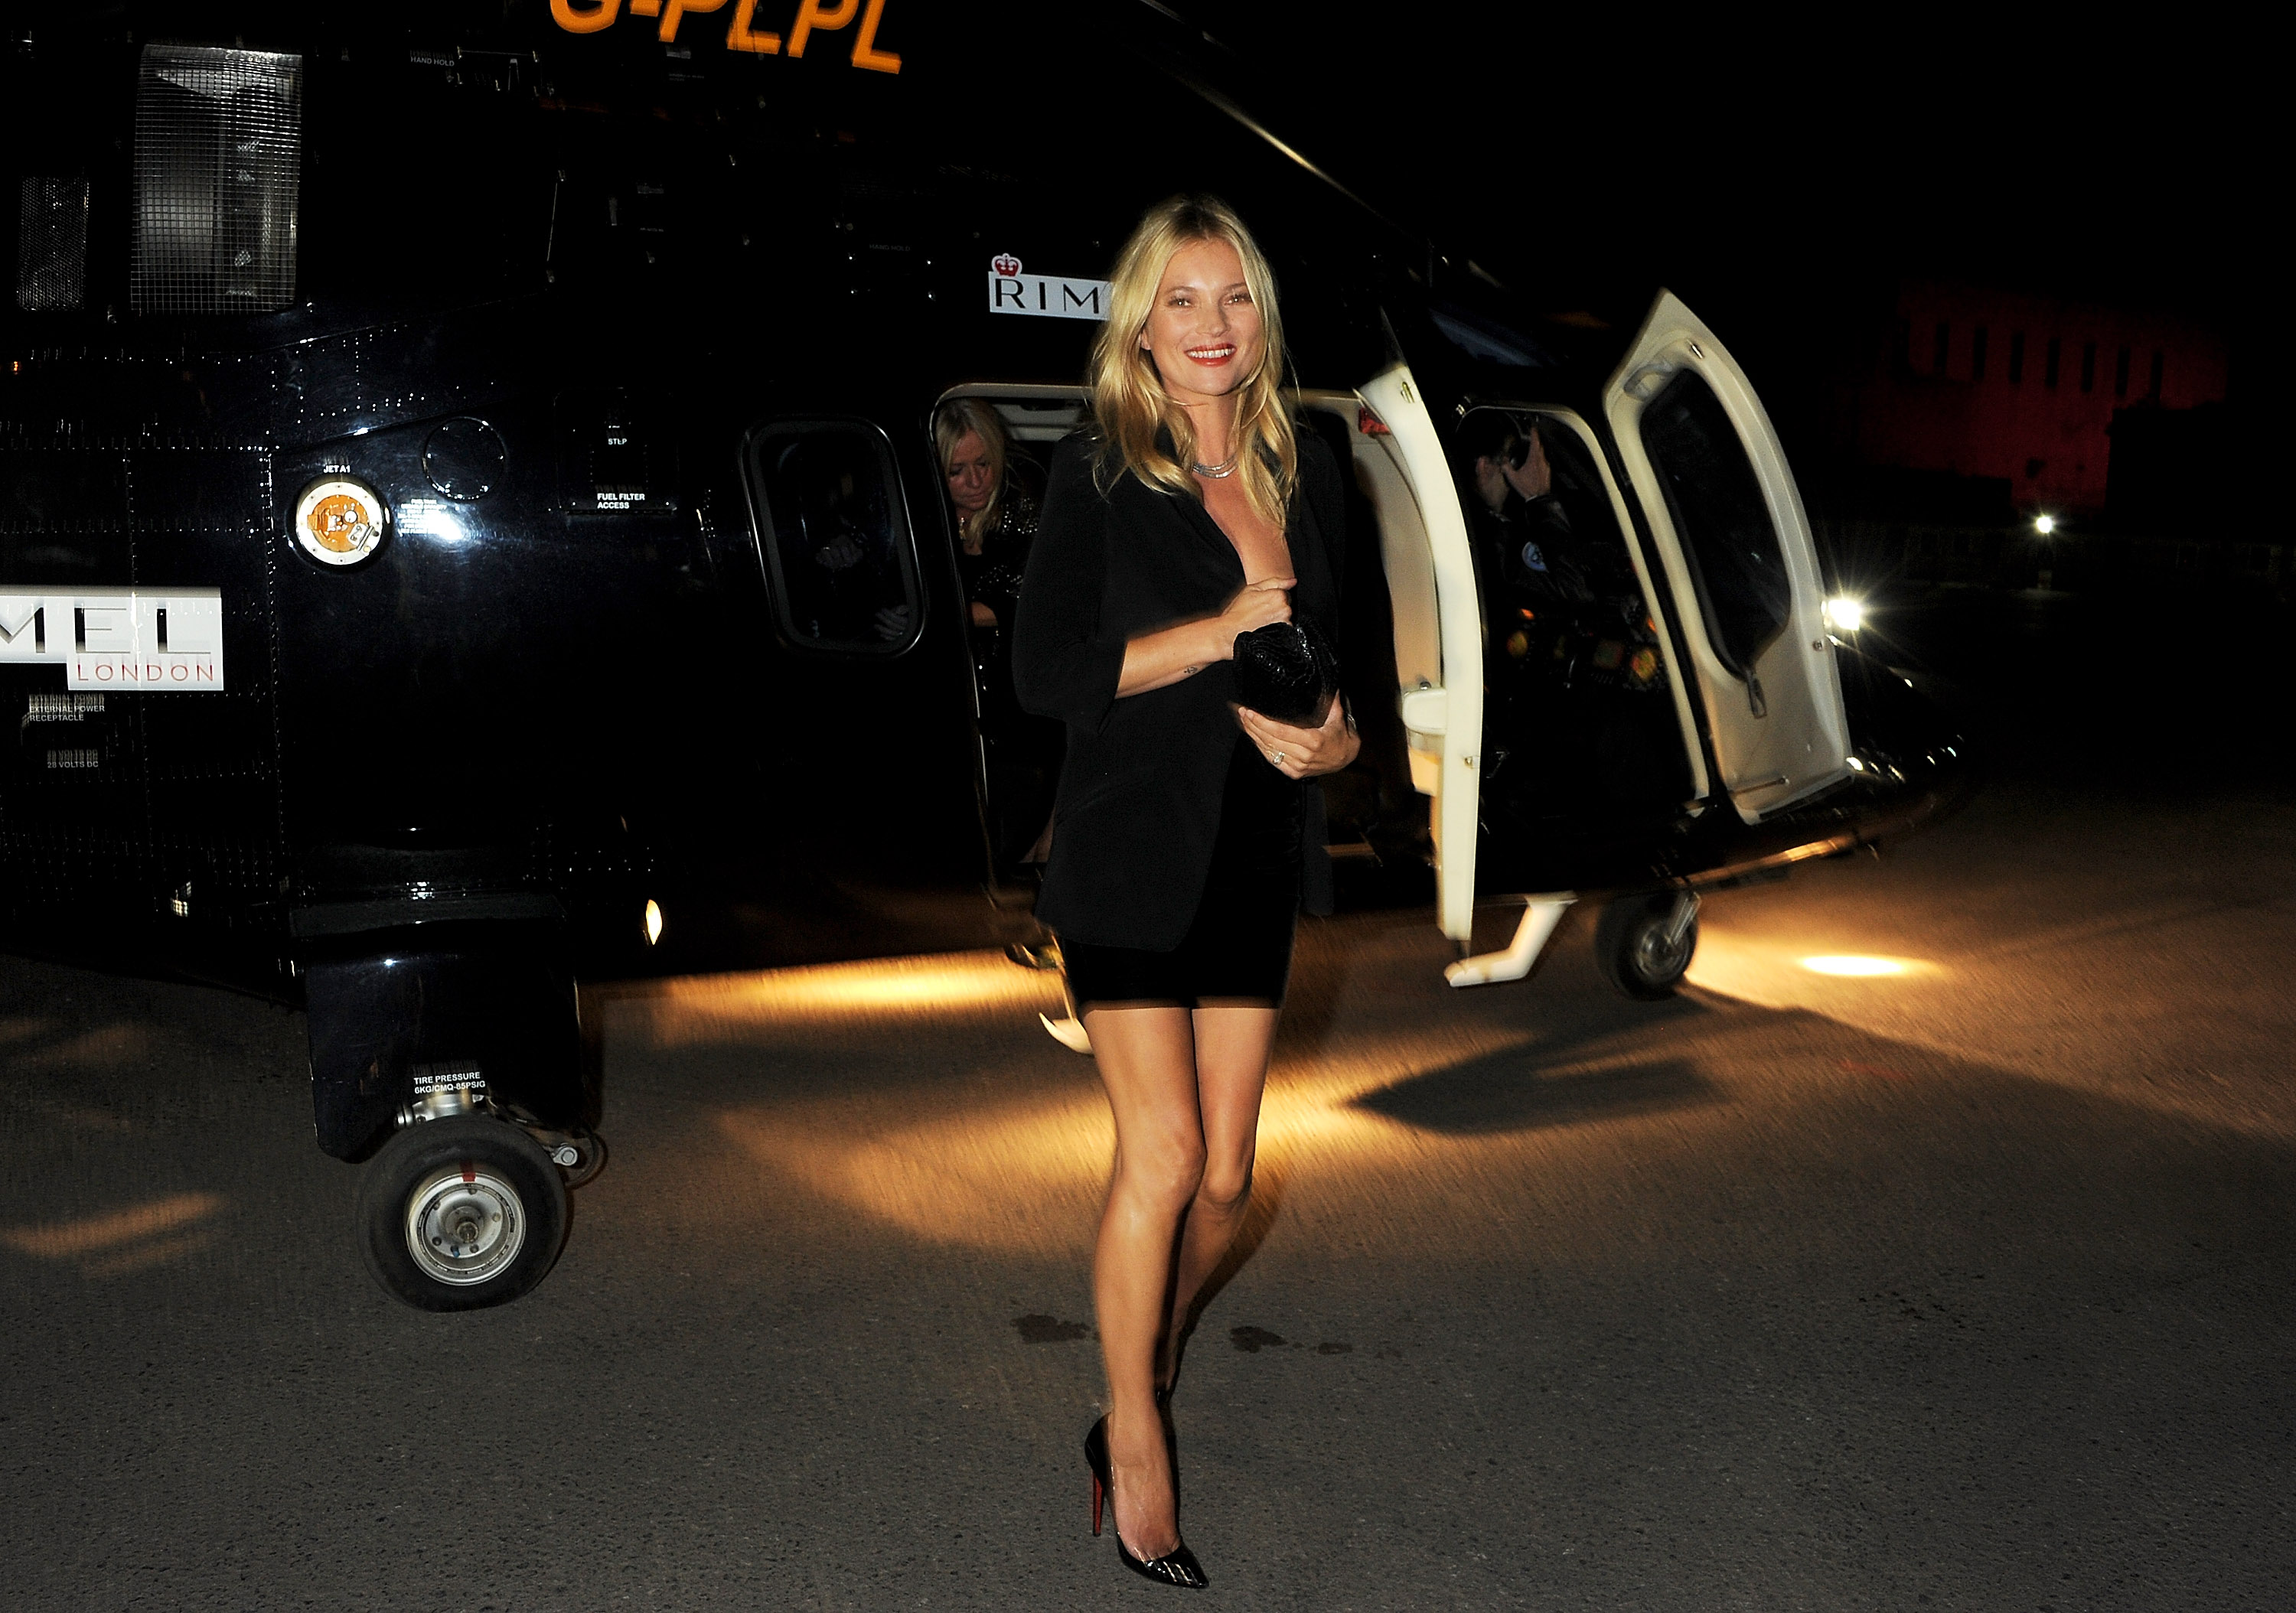 Kate Moss arrived by helicopter for the Rimmel London party.